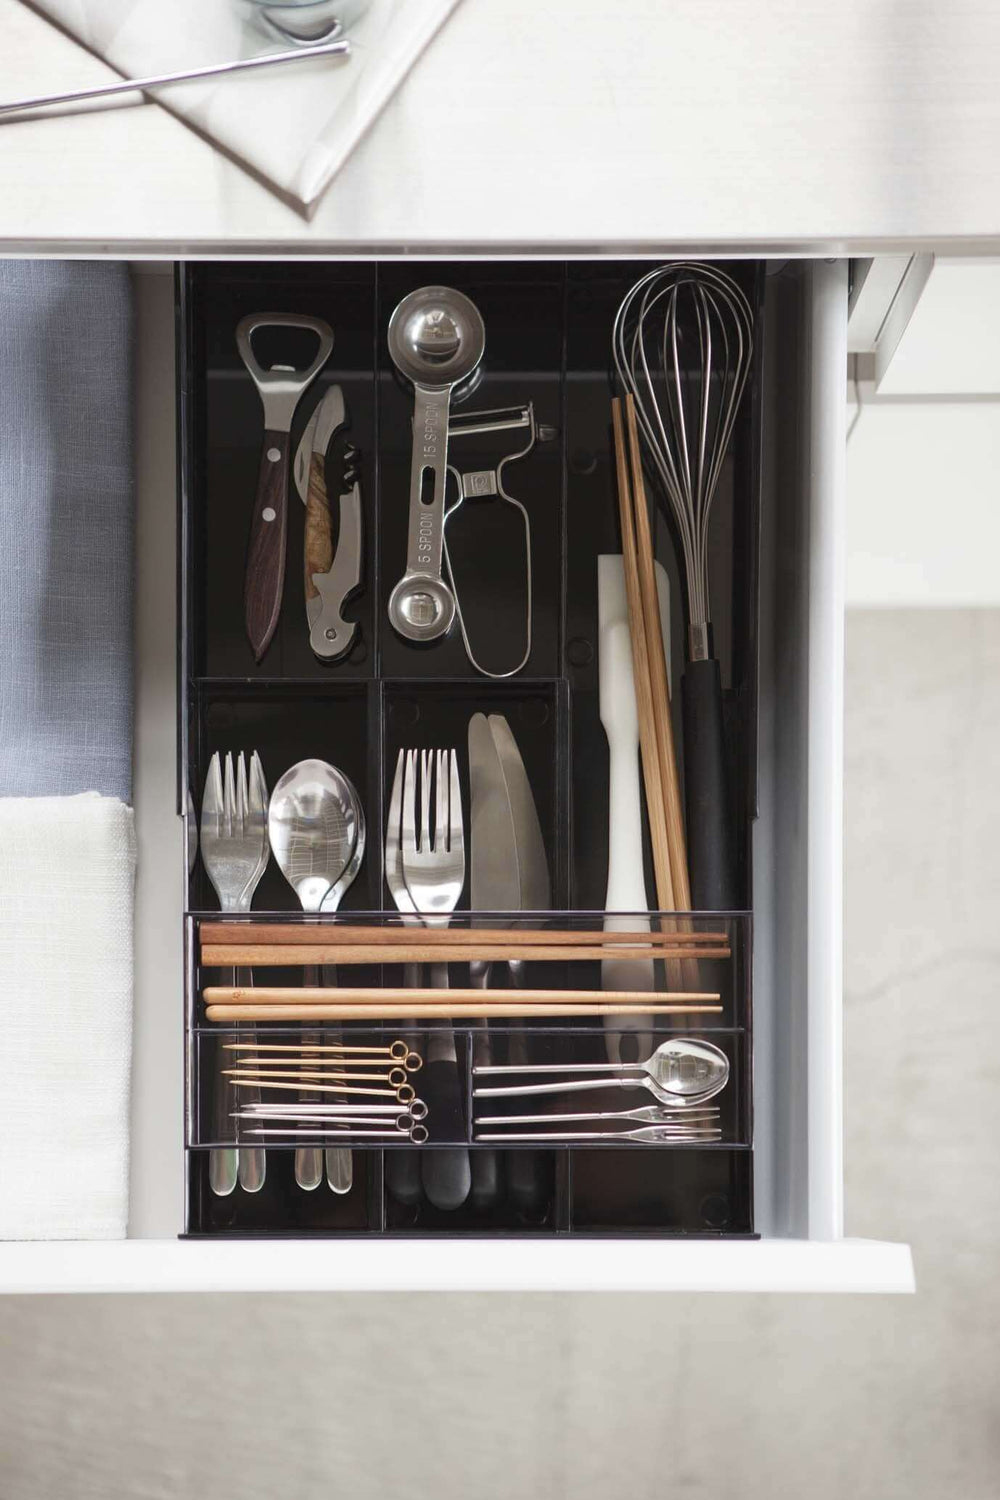 Yamazaki's black organizer filled with cutlery inside a kitchen drawer.